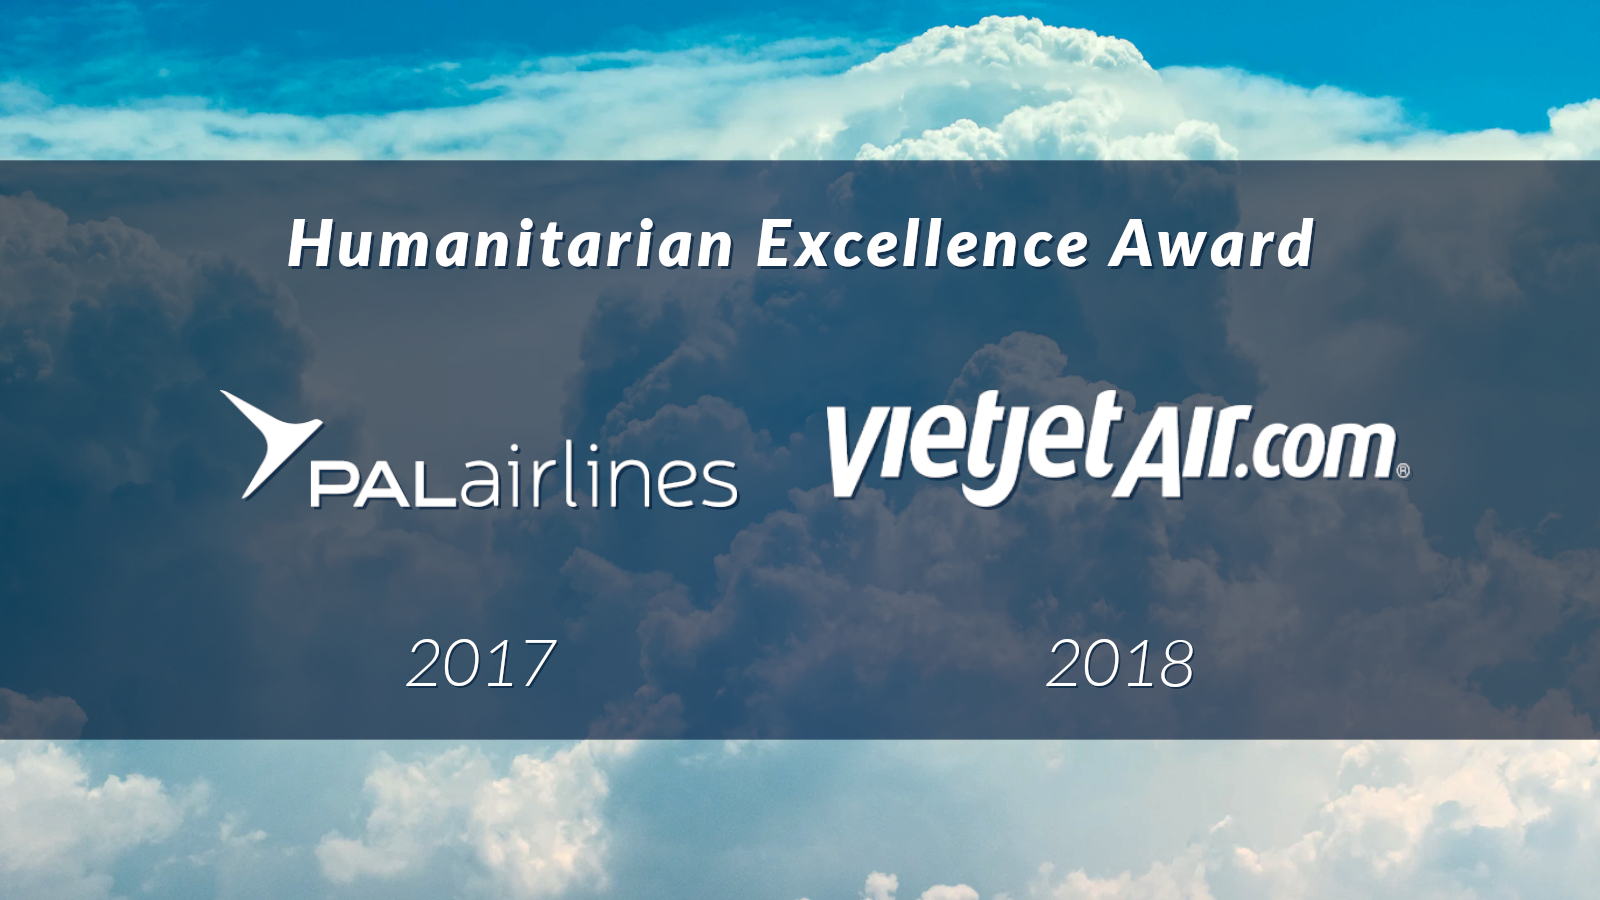 AGS Blog - Award Winners - Humanitarian Excellence [1,600 x 900]